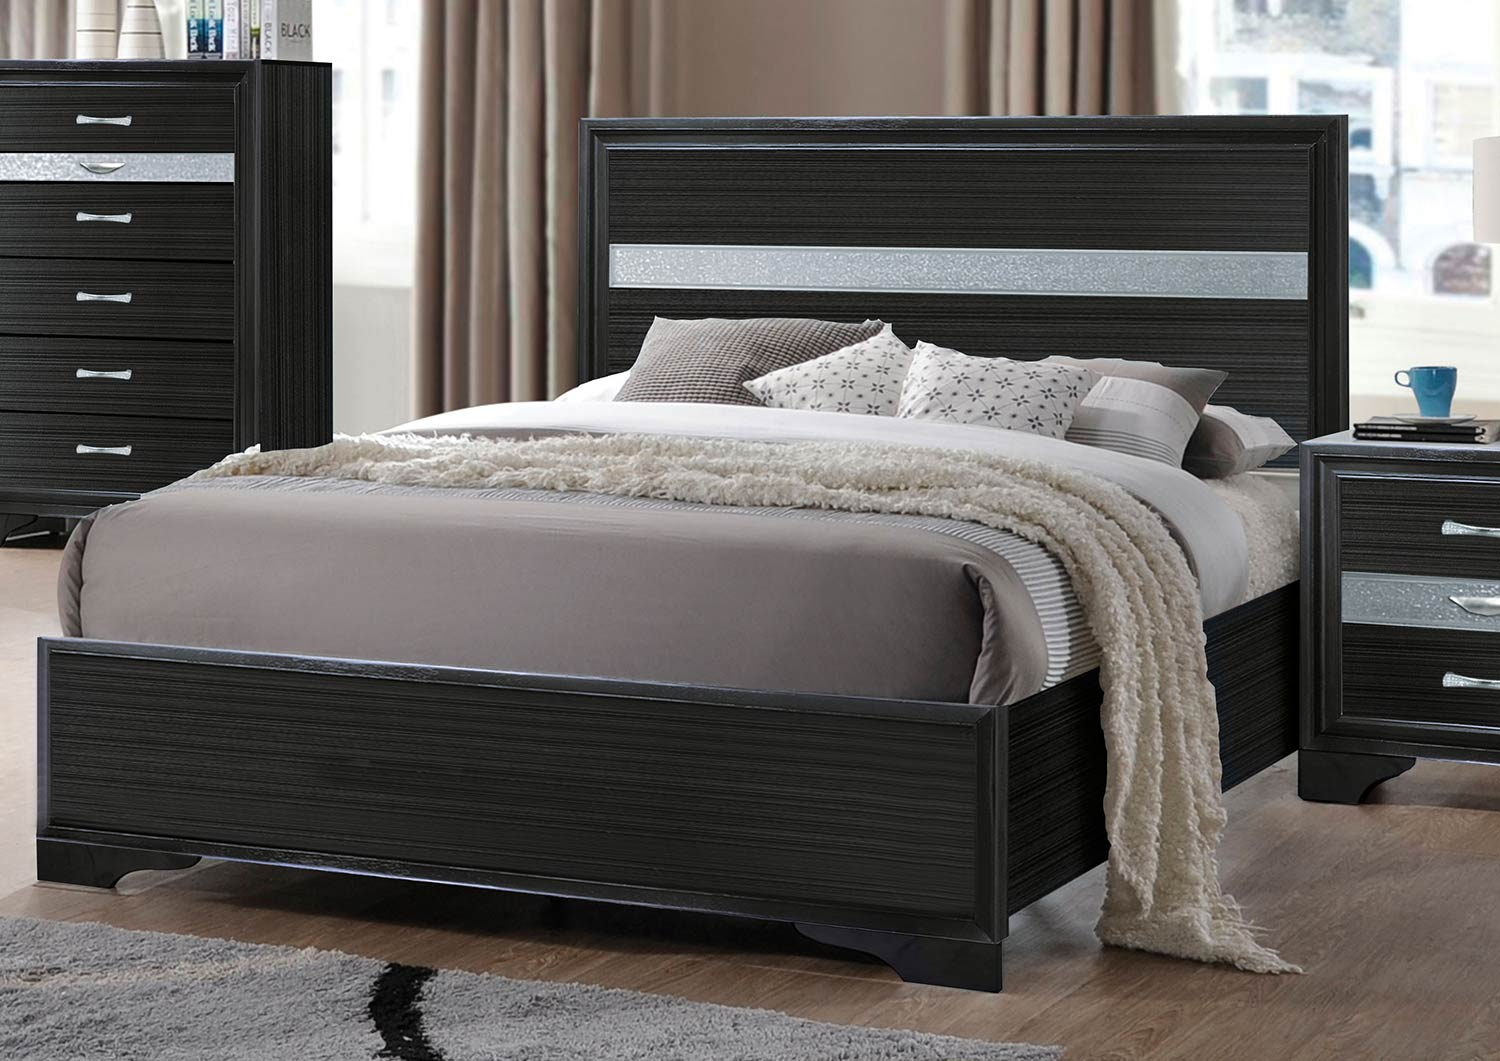 Acme Naima Bed Without Storage - Black